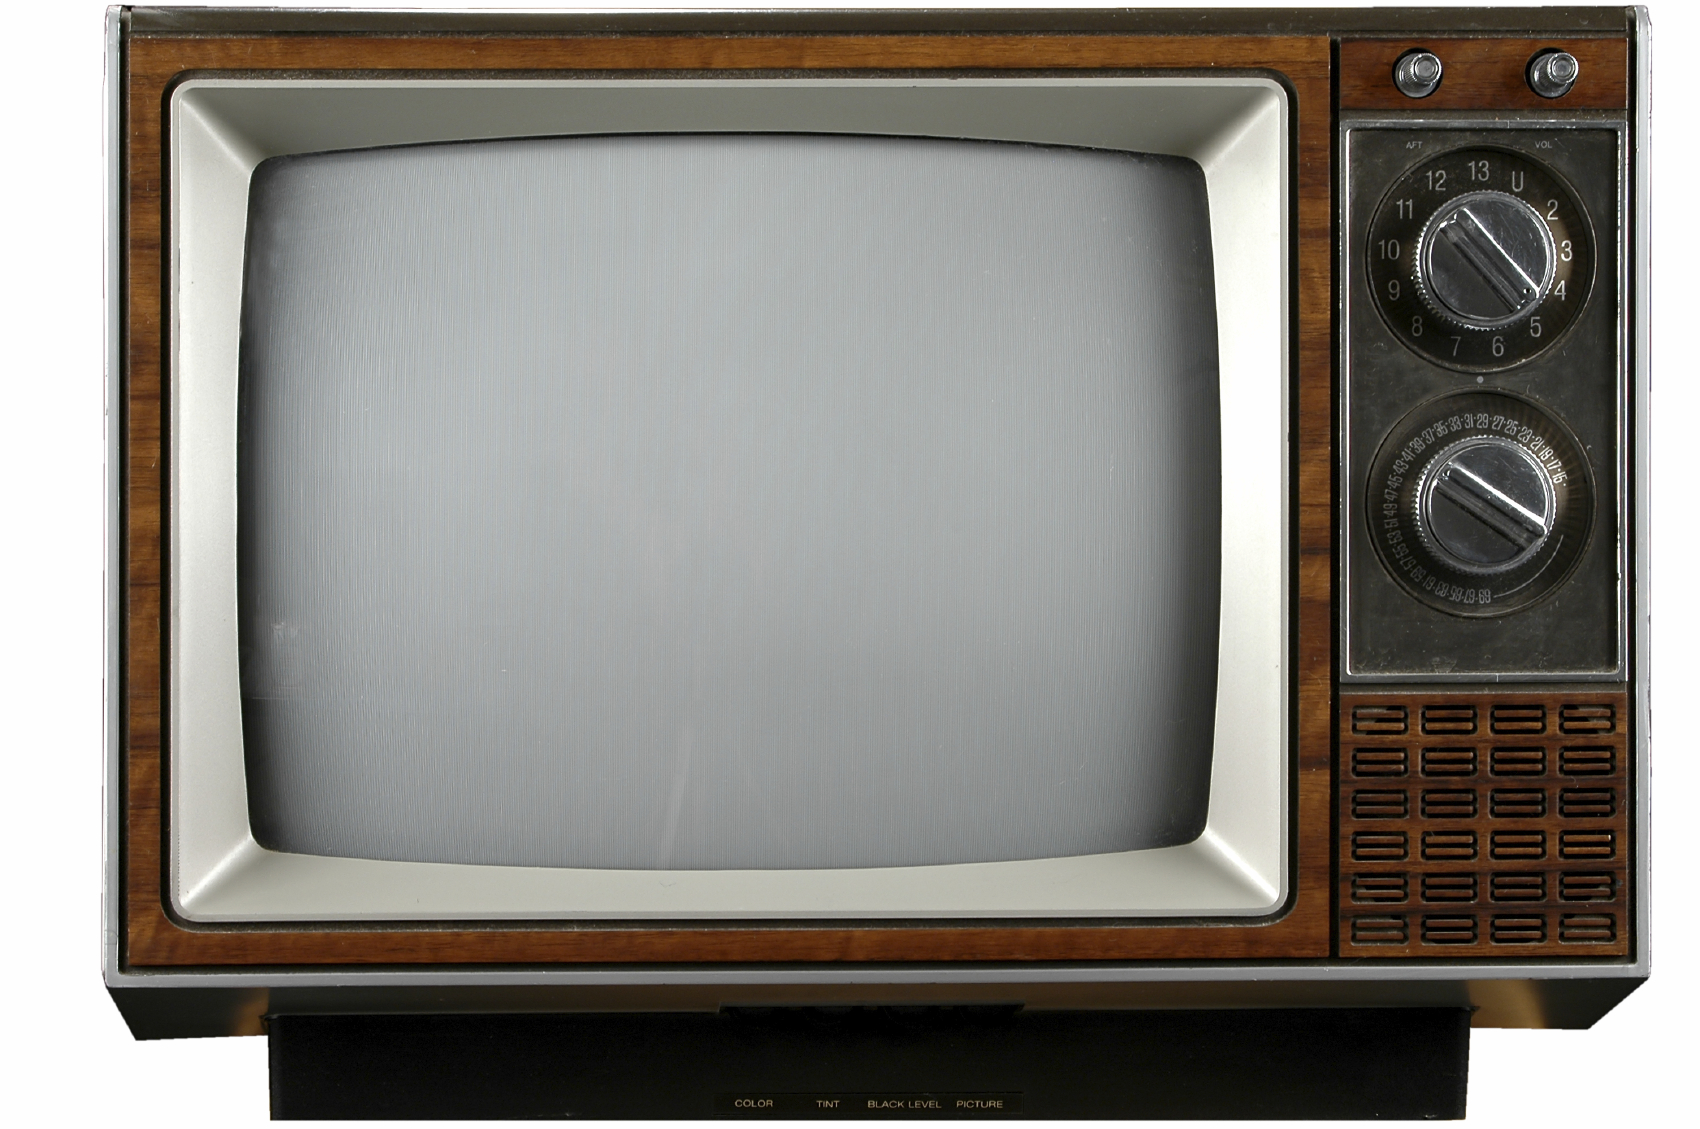 Television Png image #22270